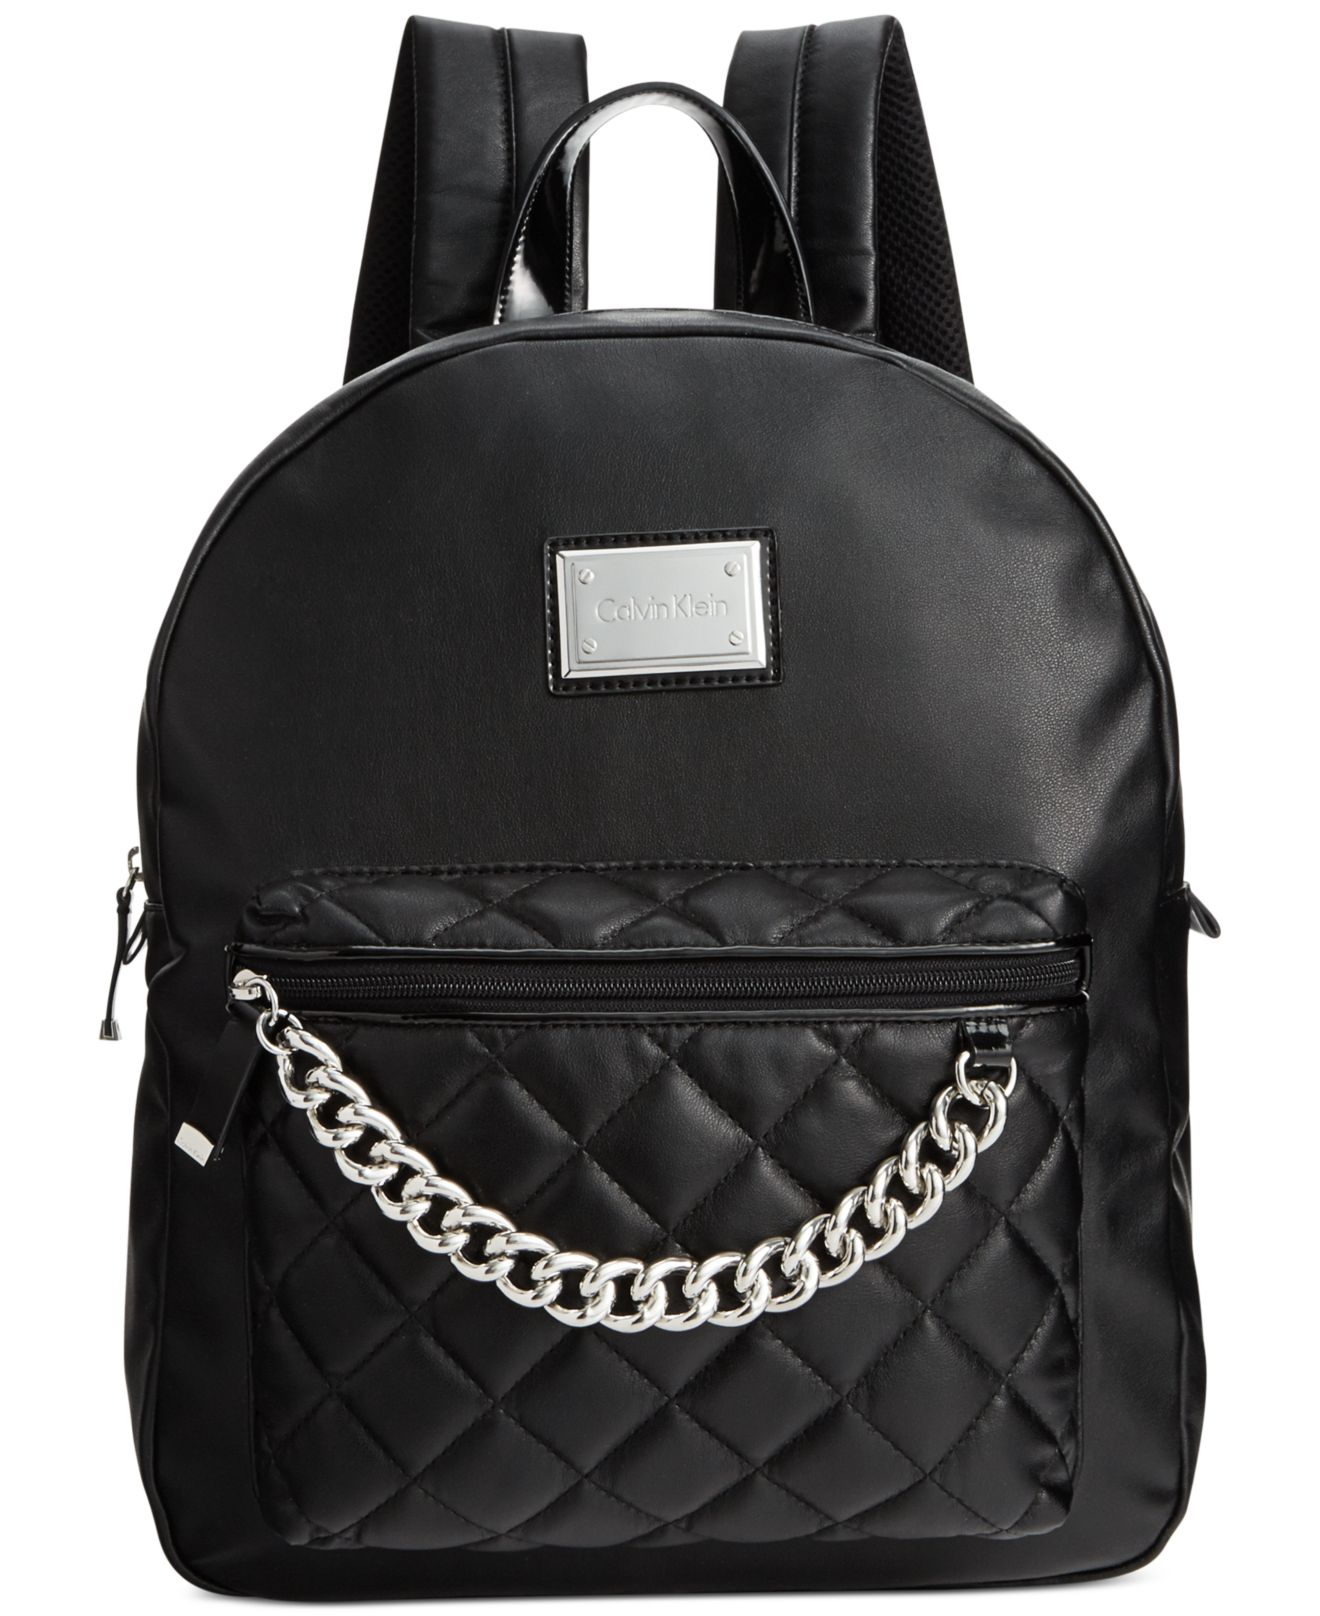 calvin klein quilted chain backpack in black lyst. Black Bedroom Furniture Sets. Home Design Ideas